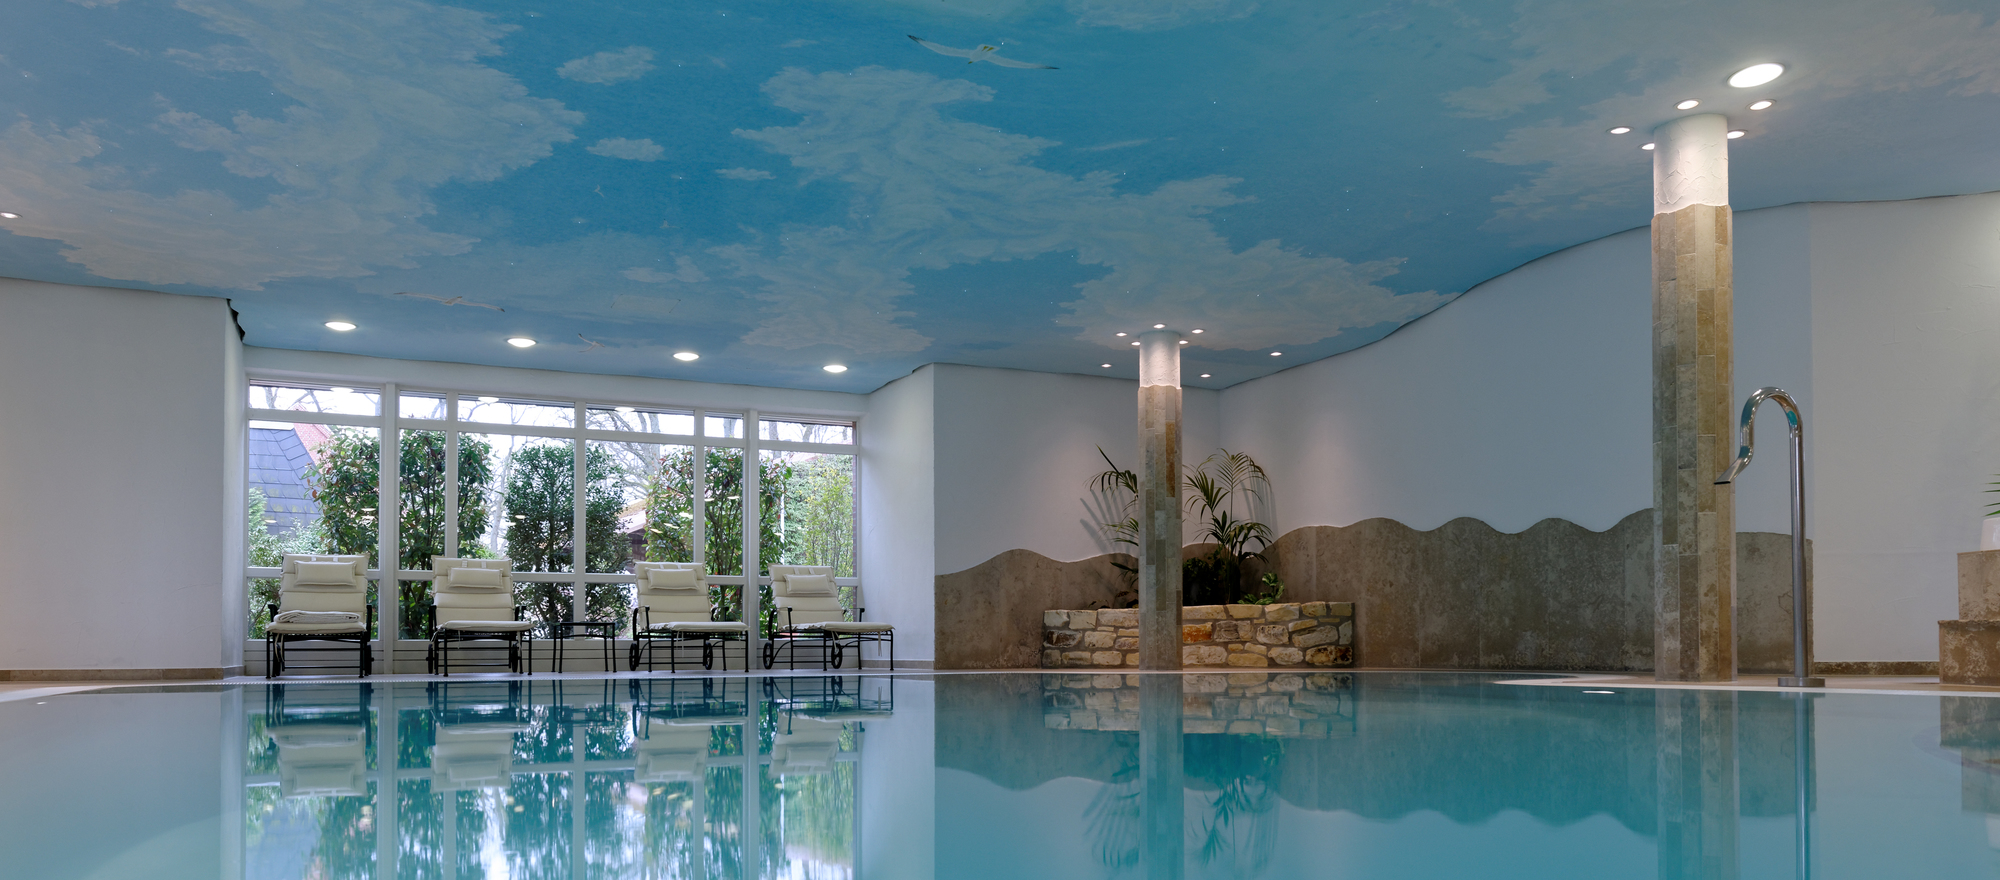 Pool and jacuzzi at the 4-star hotel Ringhotel Sellhorn in Hanstedt